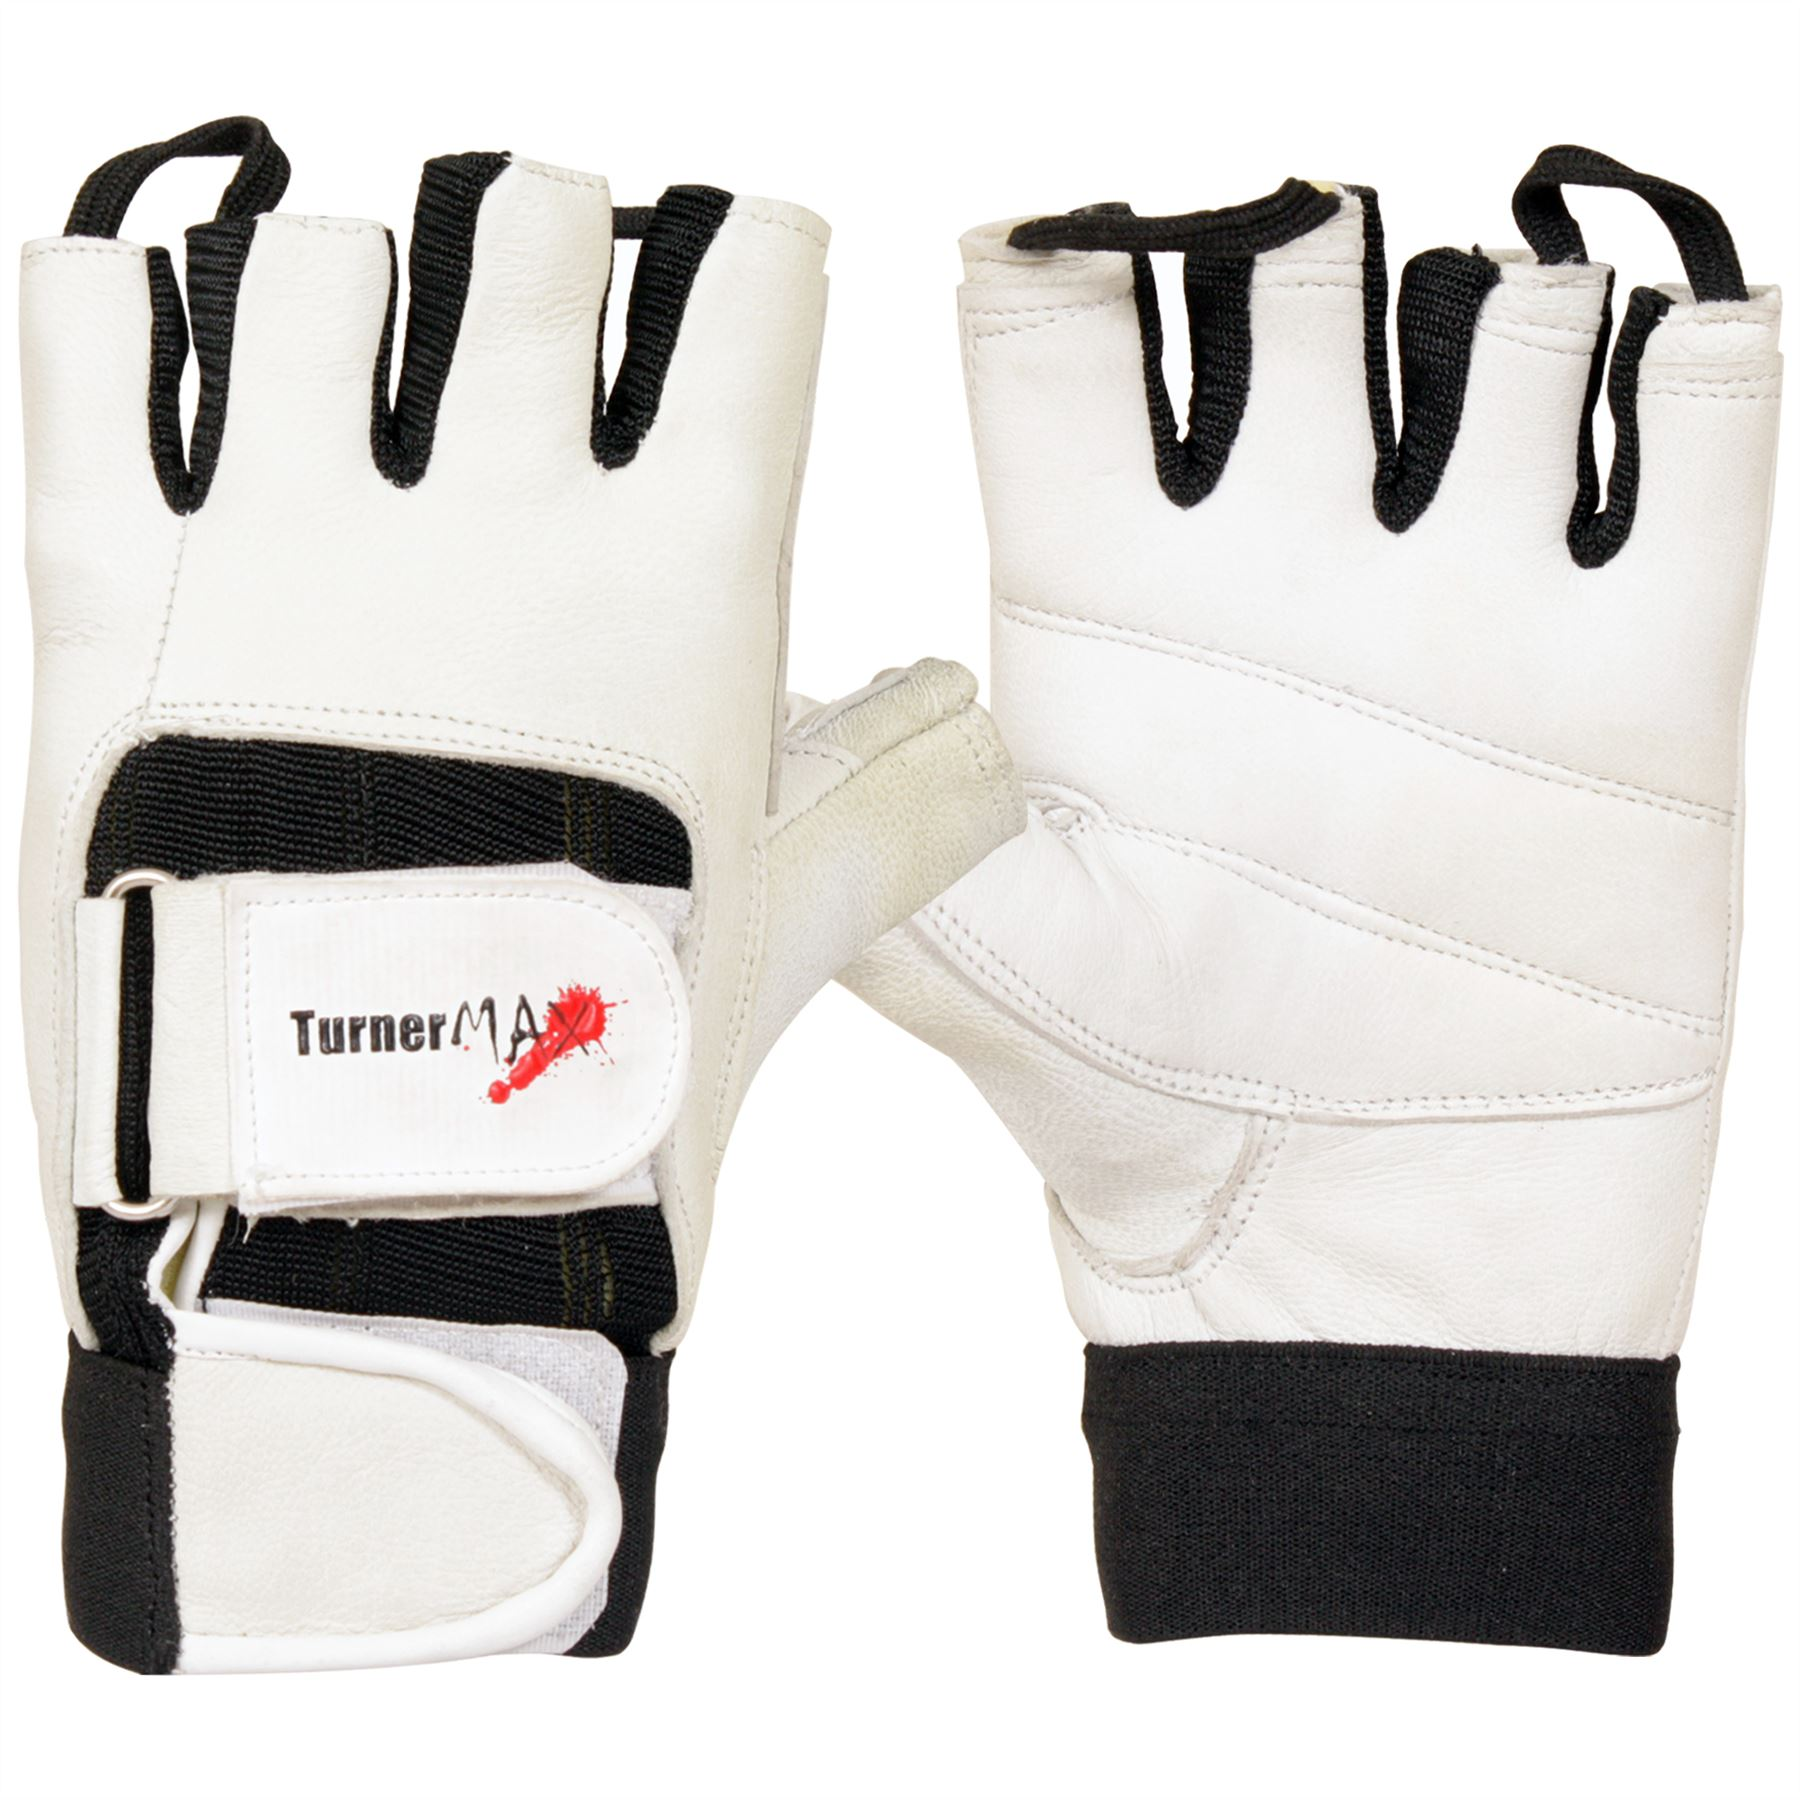 Black Leather Weight Lifting Workout Gloves: TurnerMAX LEATHER Weight Lifting Body Building Gloves Gym